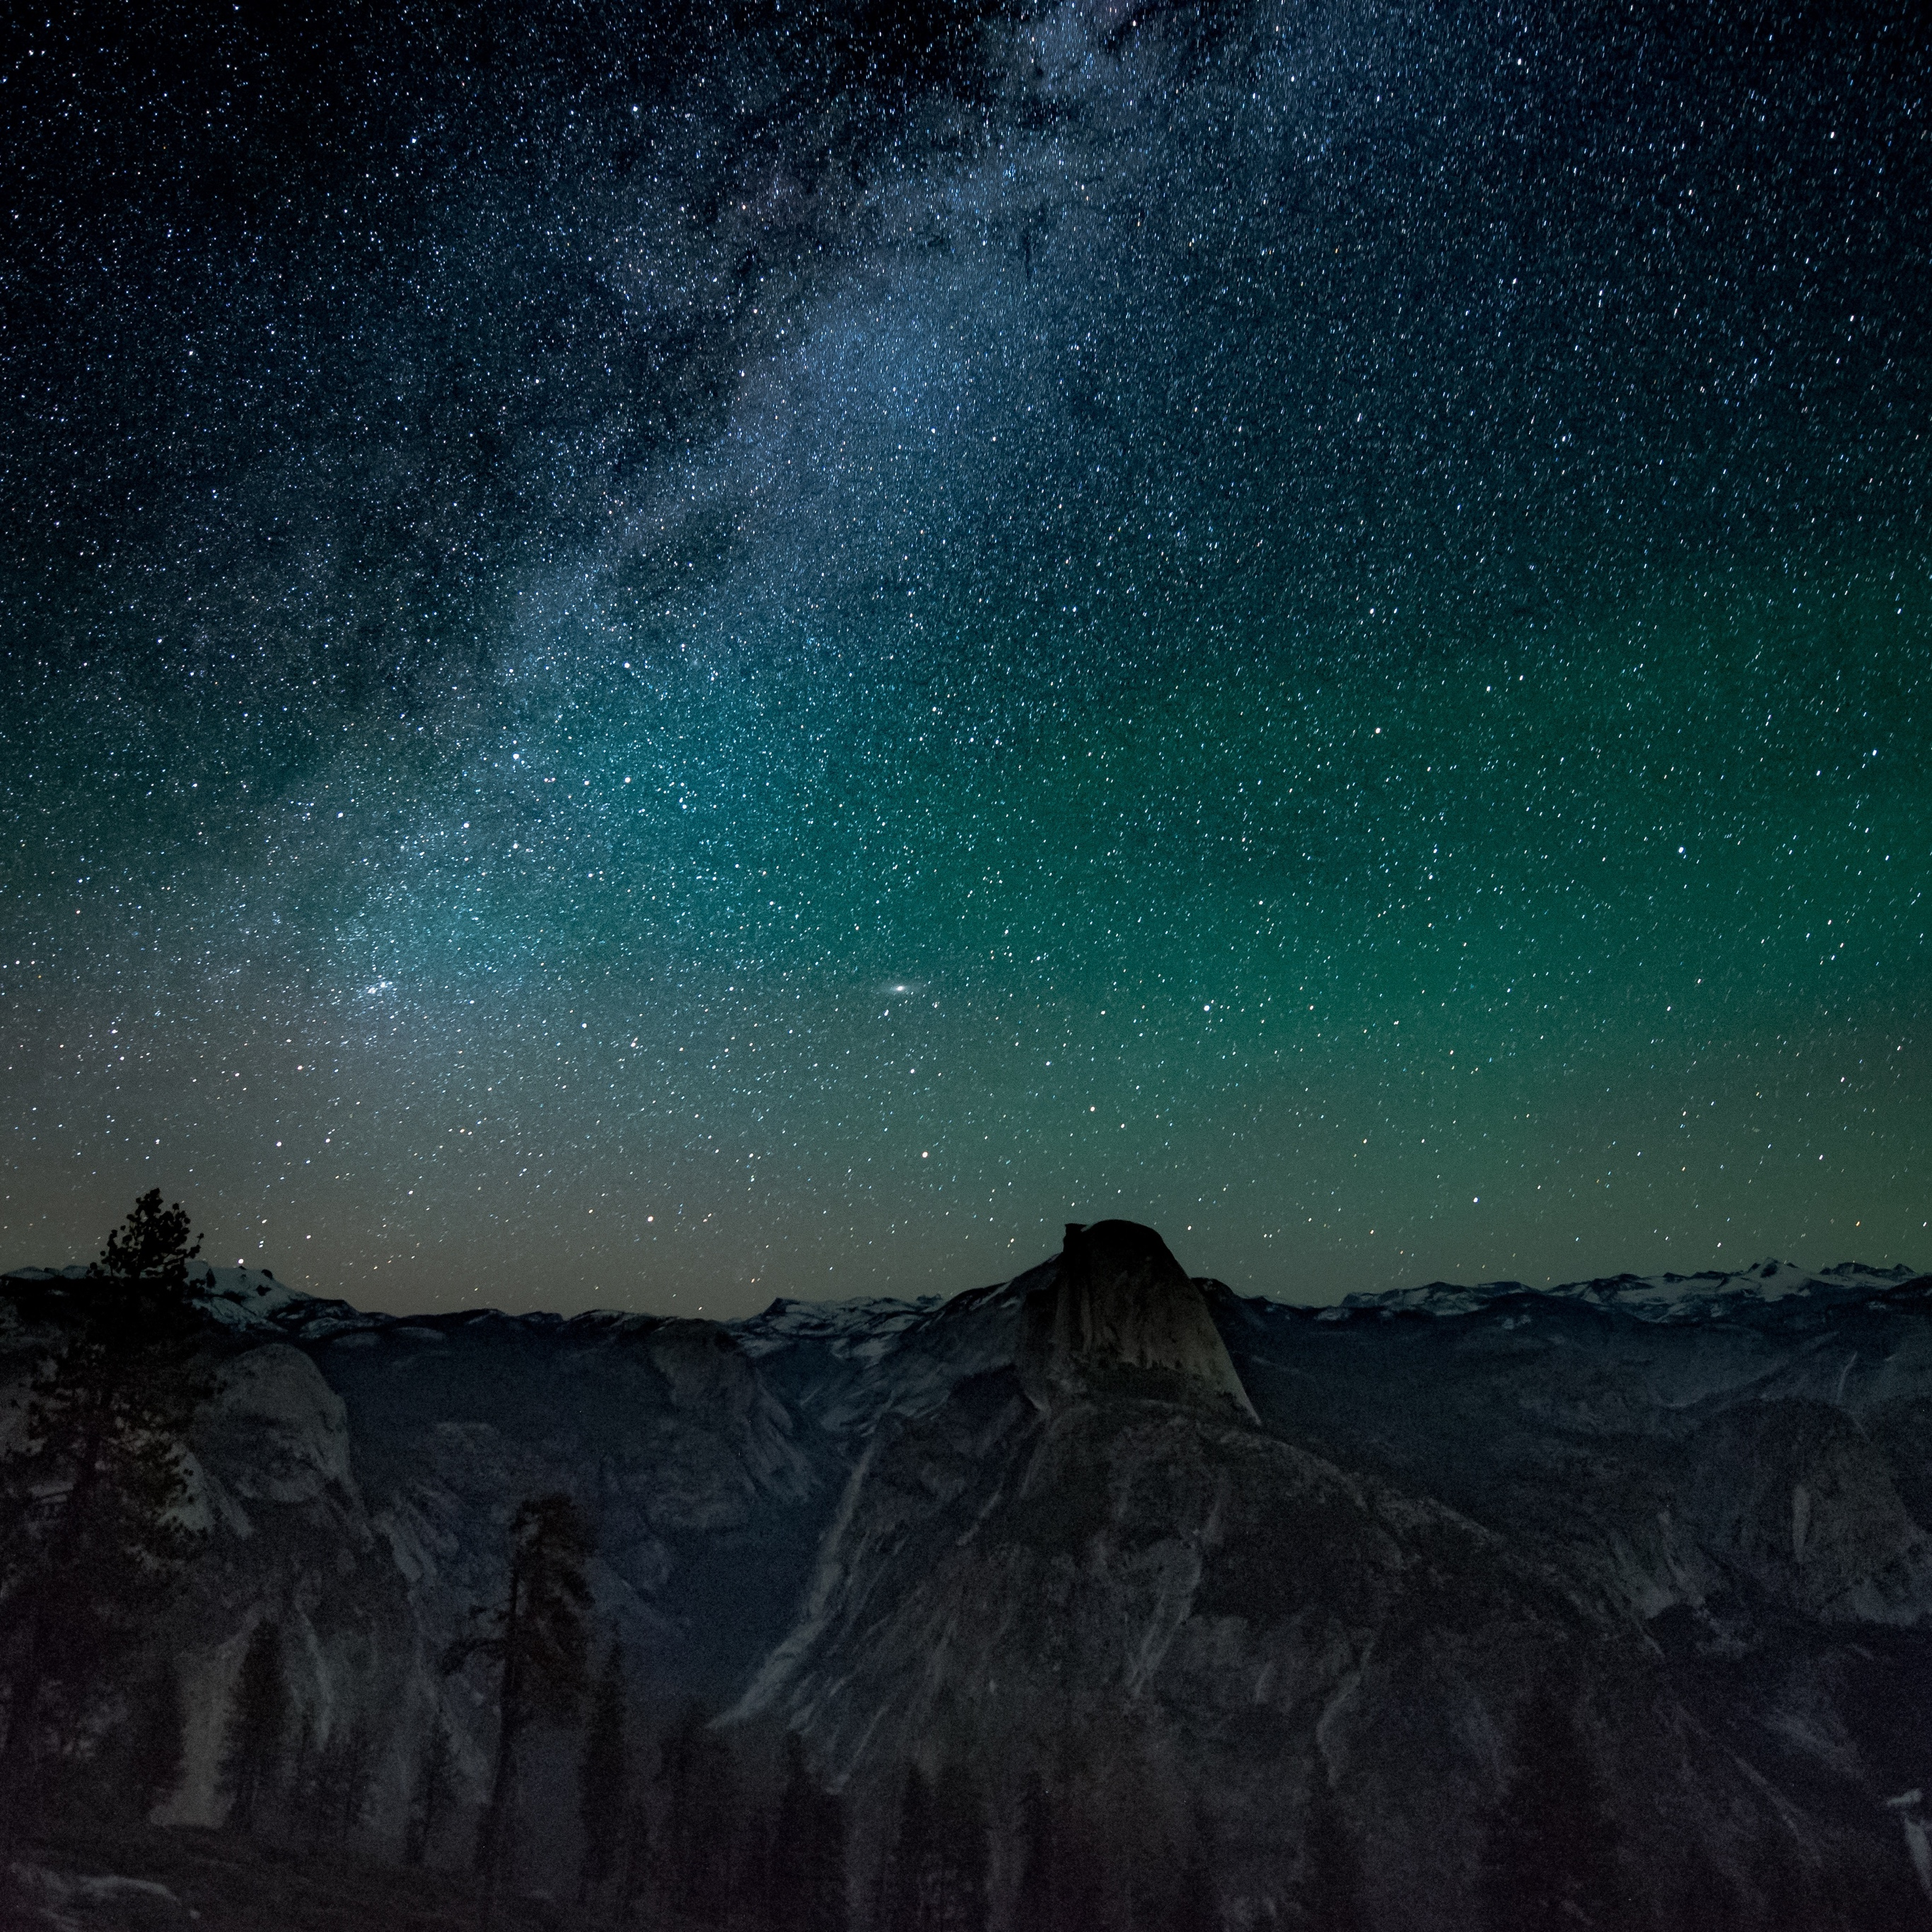 Wallpaper Weekends Night Sky Over Yosemite For Mac Ipad